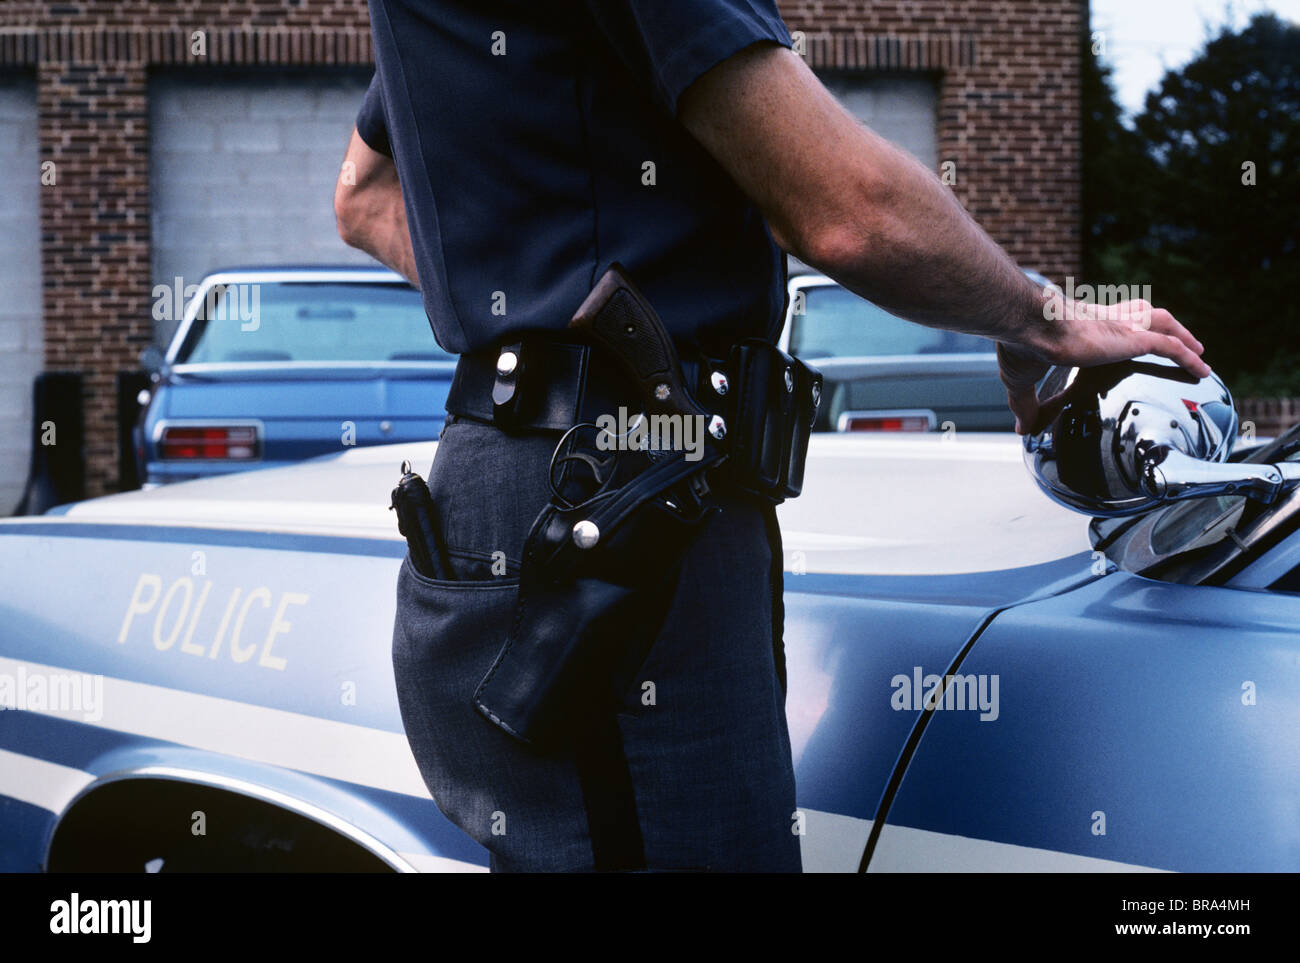 1970s detail of police officers hip with belt gun and holster